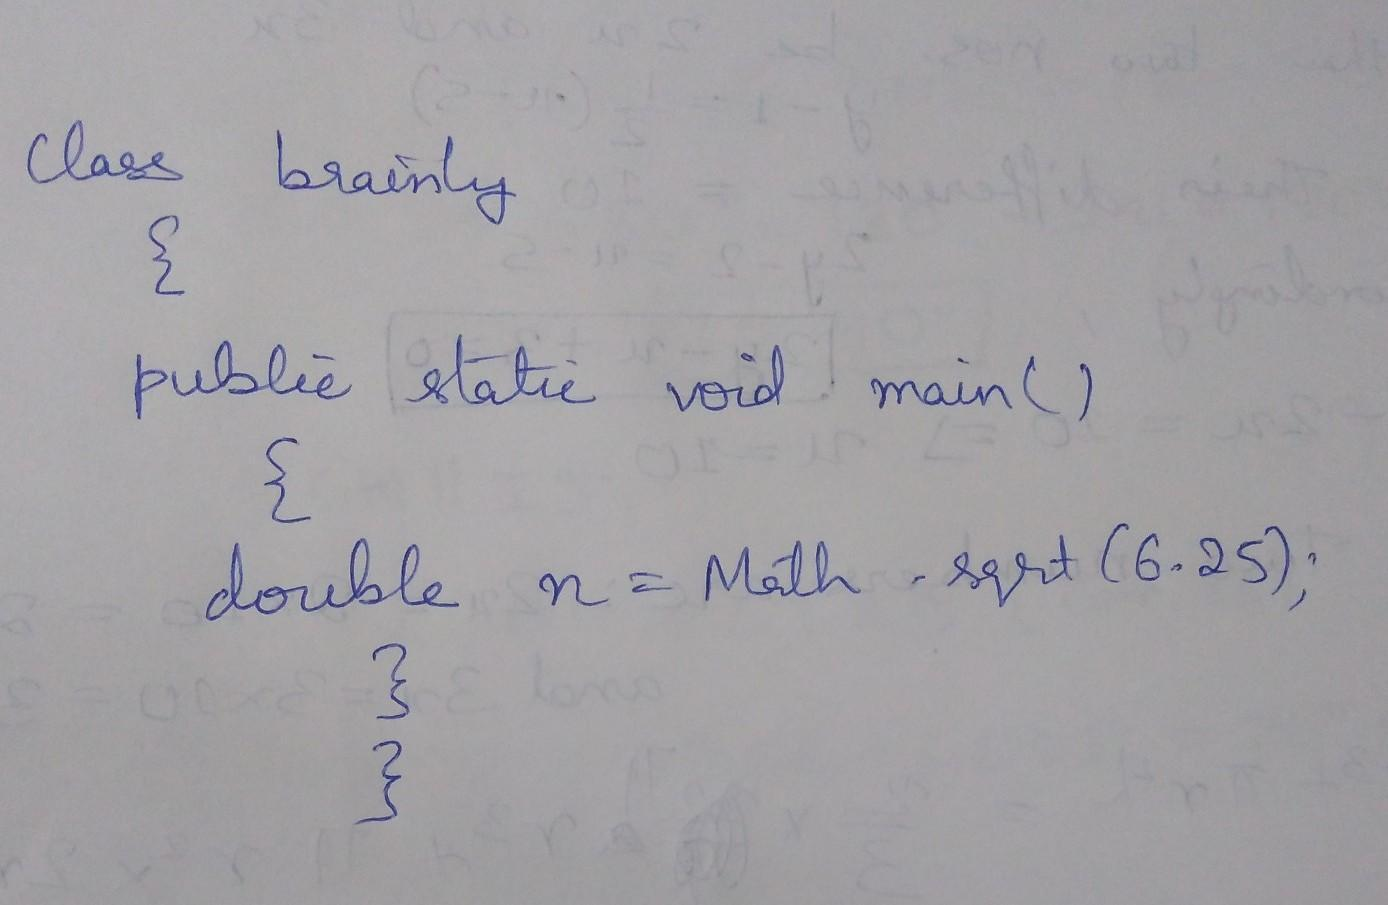 How to calculate in computer JAVA double n=Math  sqrt(6 25